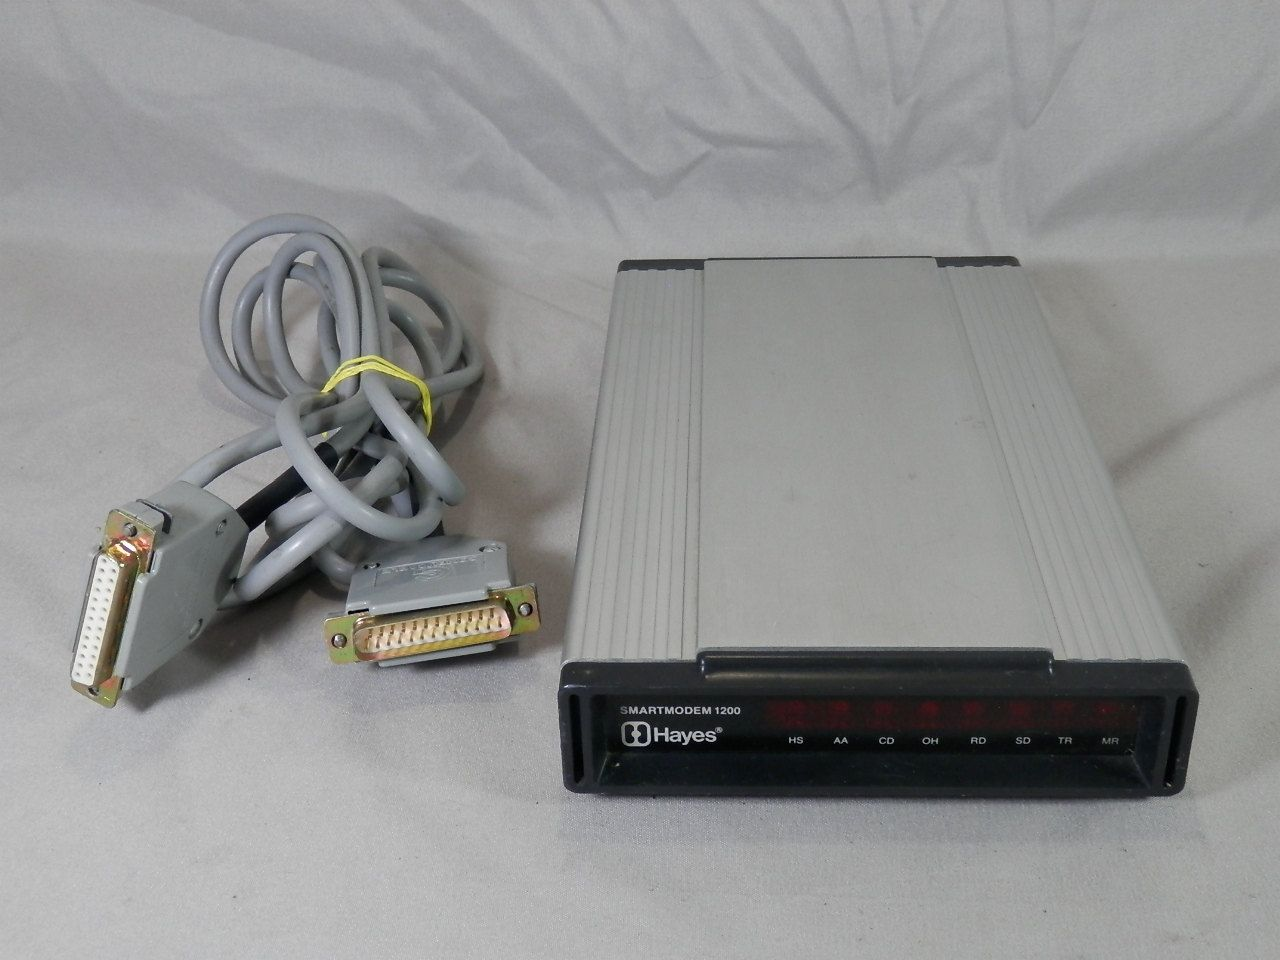 HAYES SMARTMODEM 1200 DRIVER FOR WINDOWS 8